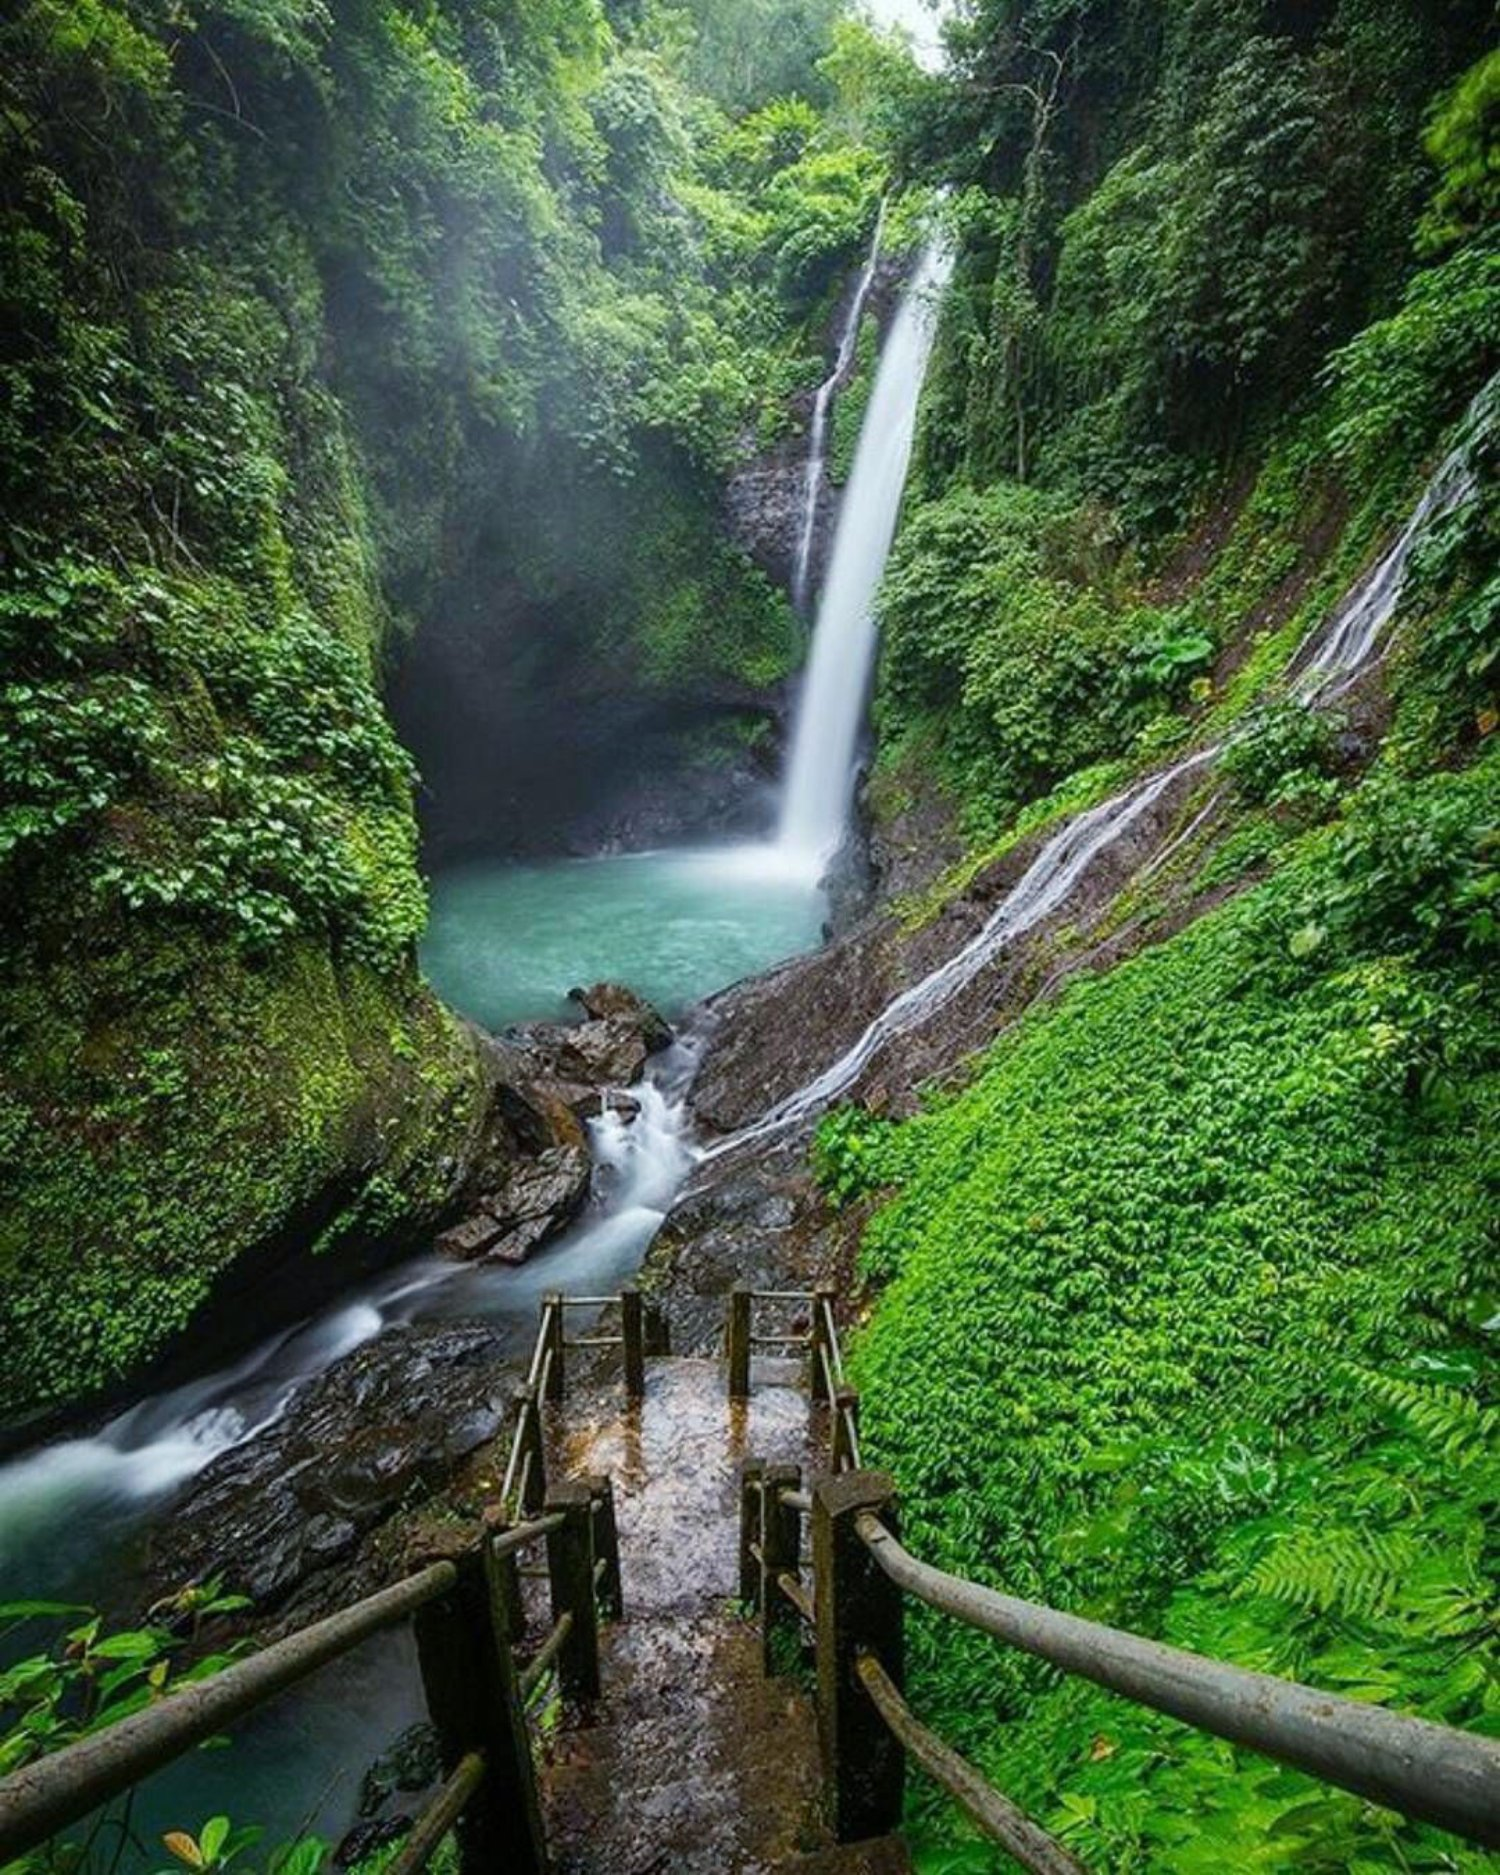 Fabulous Waterfall in Hidden Place of North Bali